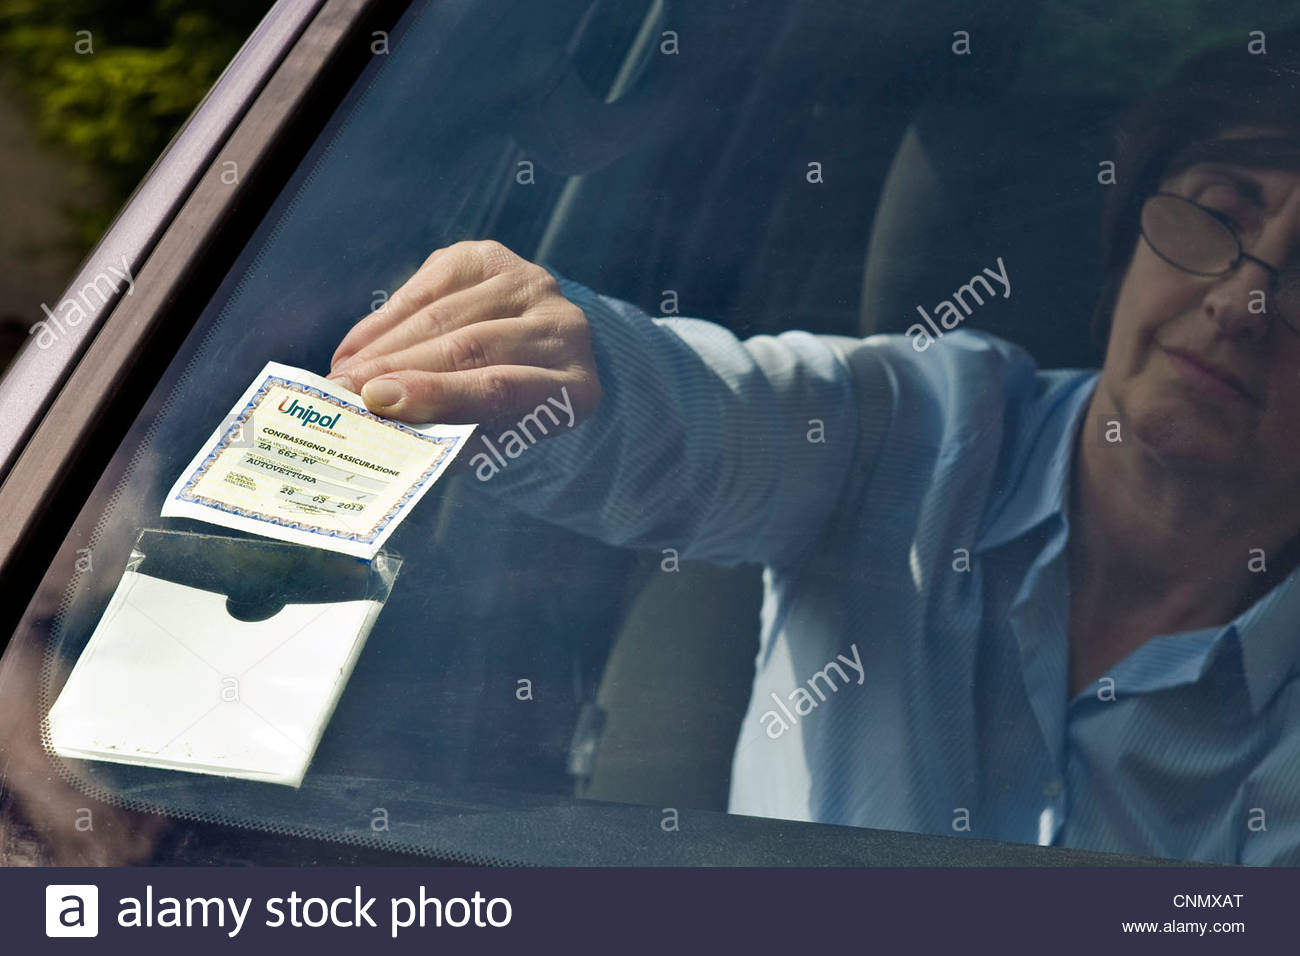 car insurance - Stock Image